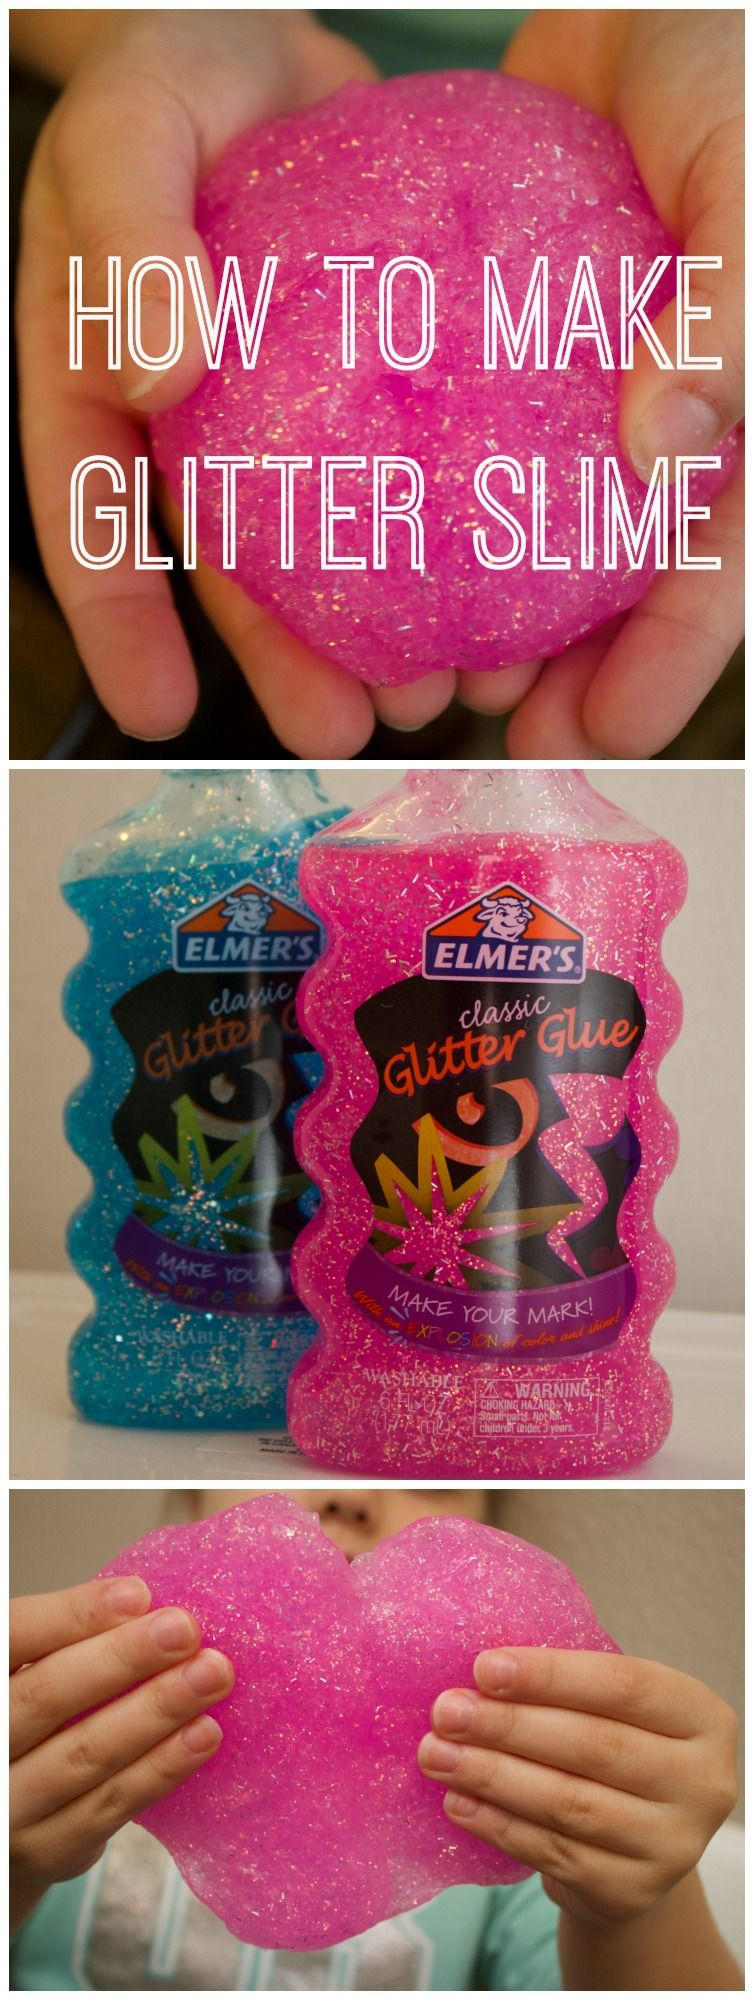 How To Make Glitter Slime With Only 3 Ingredients!